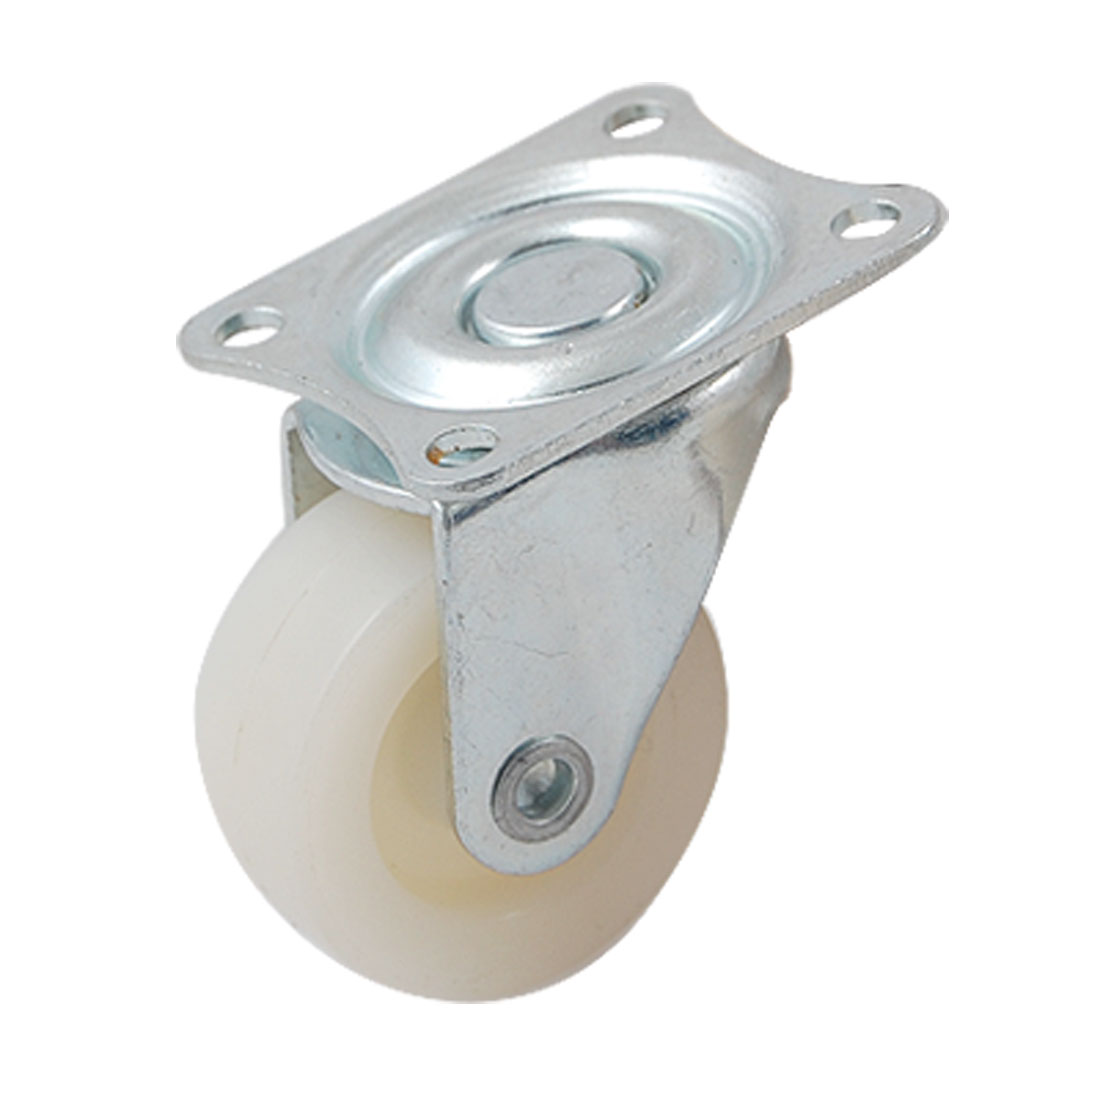 "2 Pcs 1.5"" White Plastic Wheel Light Duty Swivel Plate Casters"